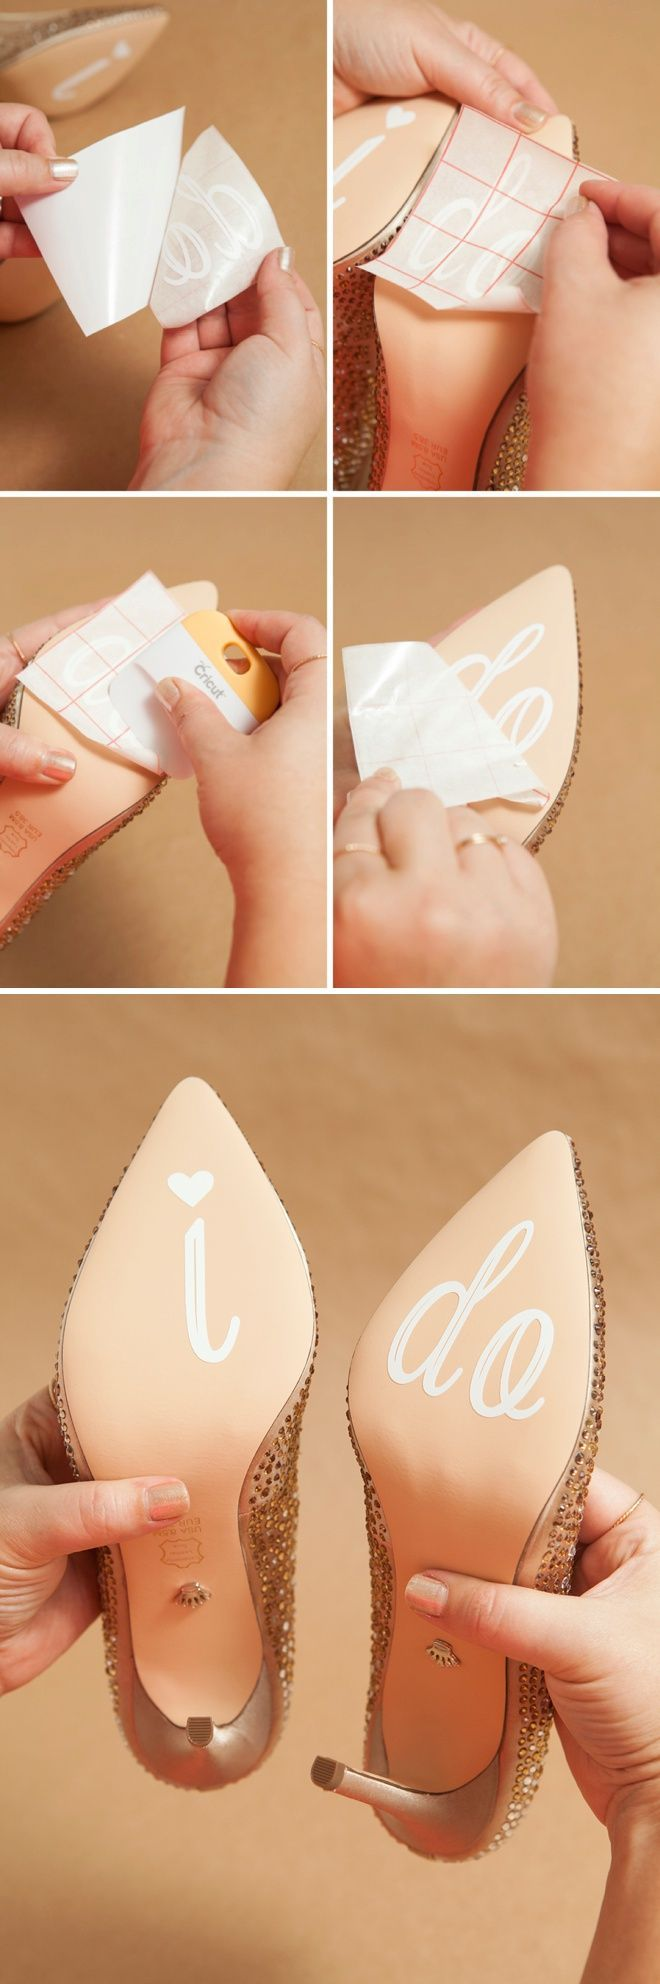 Learn how to make your own custom, wedding shoe stickers!